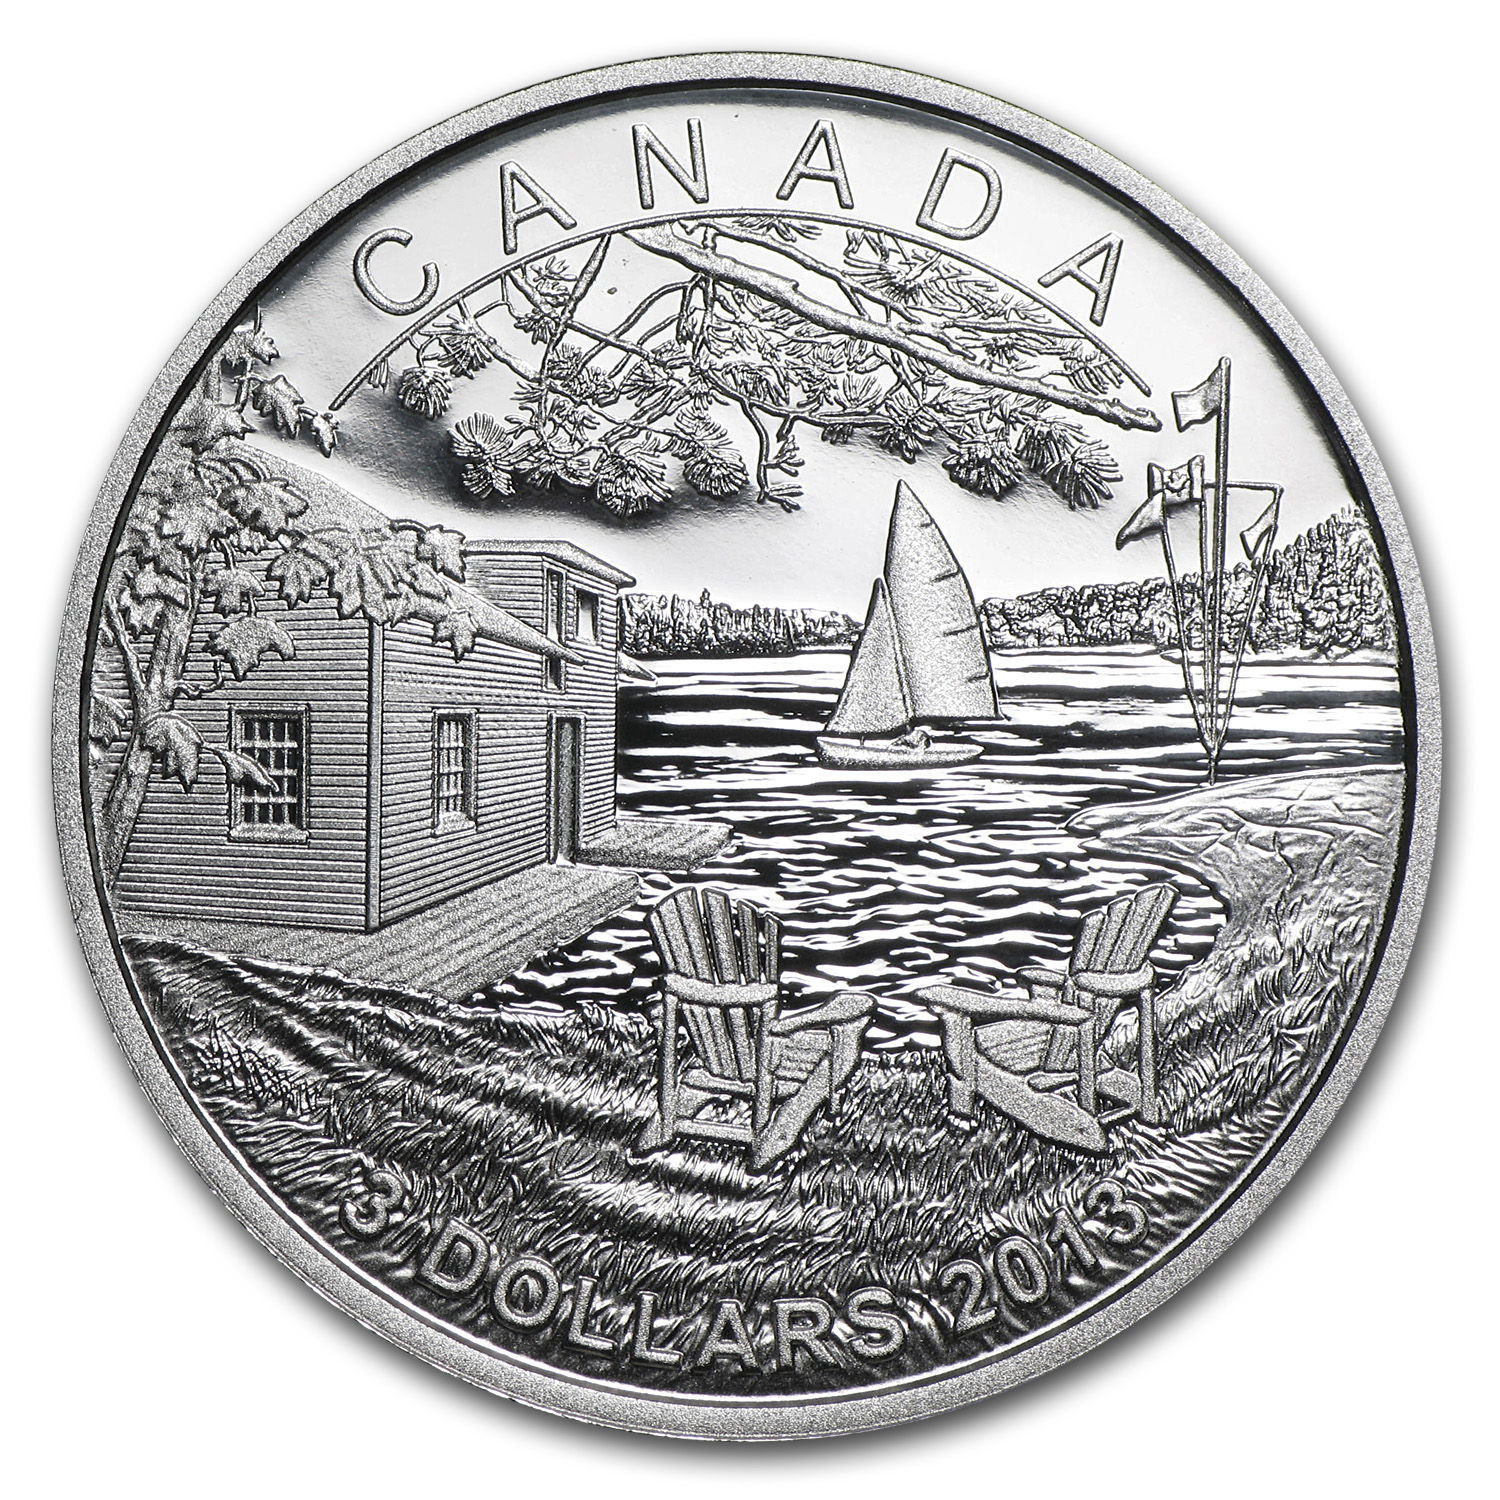 2013 1/4 oz Silver Canadian $3 Martin Short Presents Canada